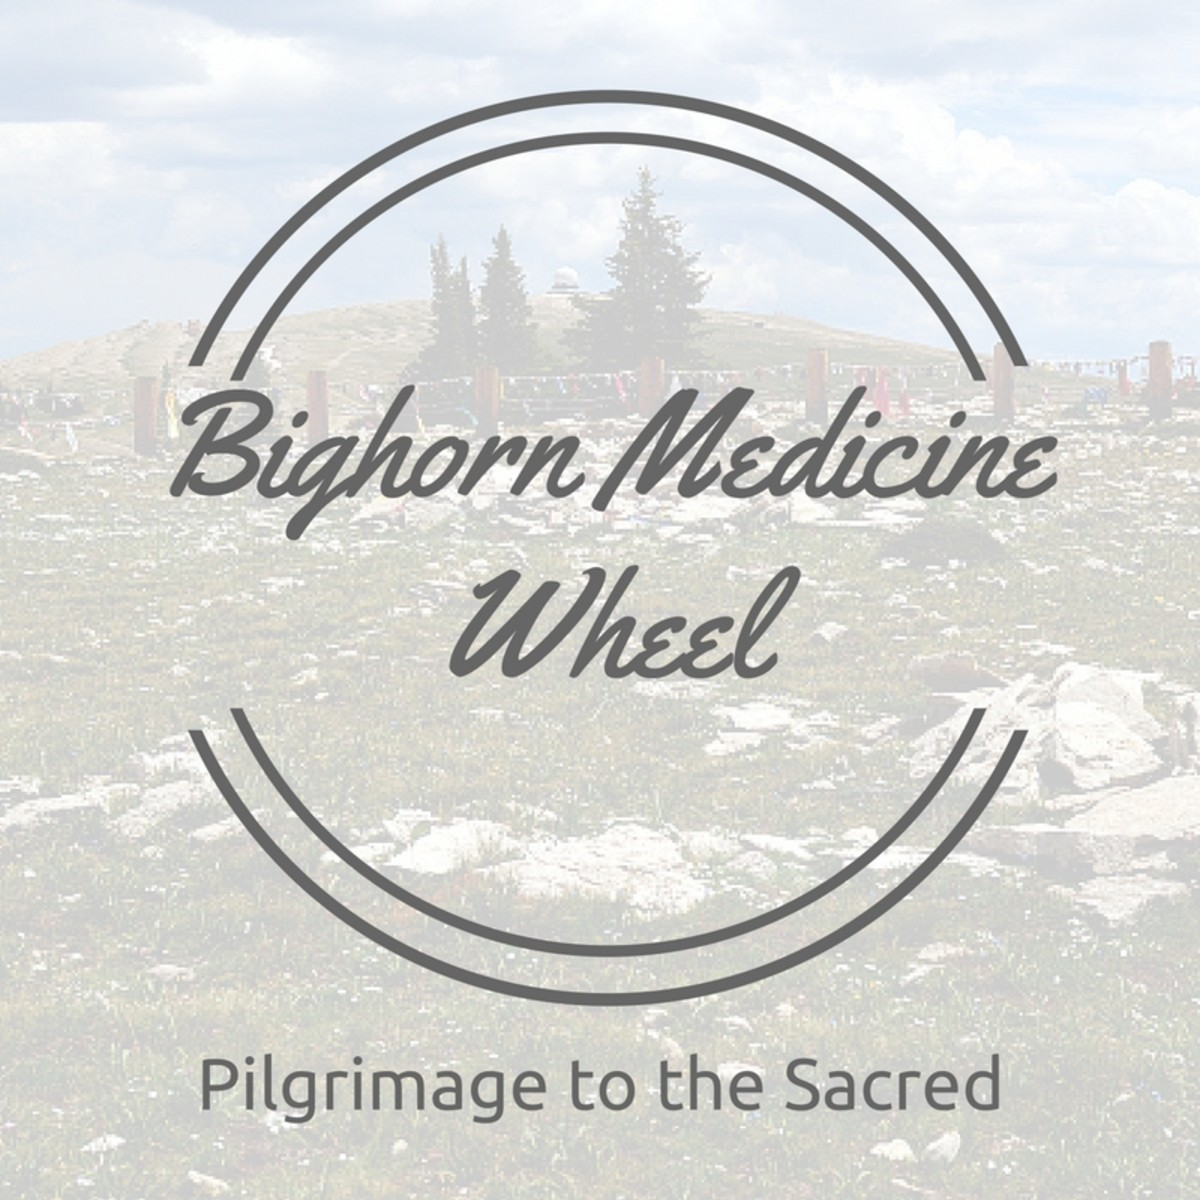 Bighorn Medicine Wheel is a sacred place.